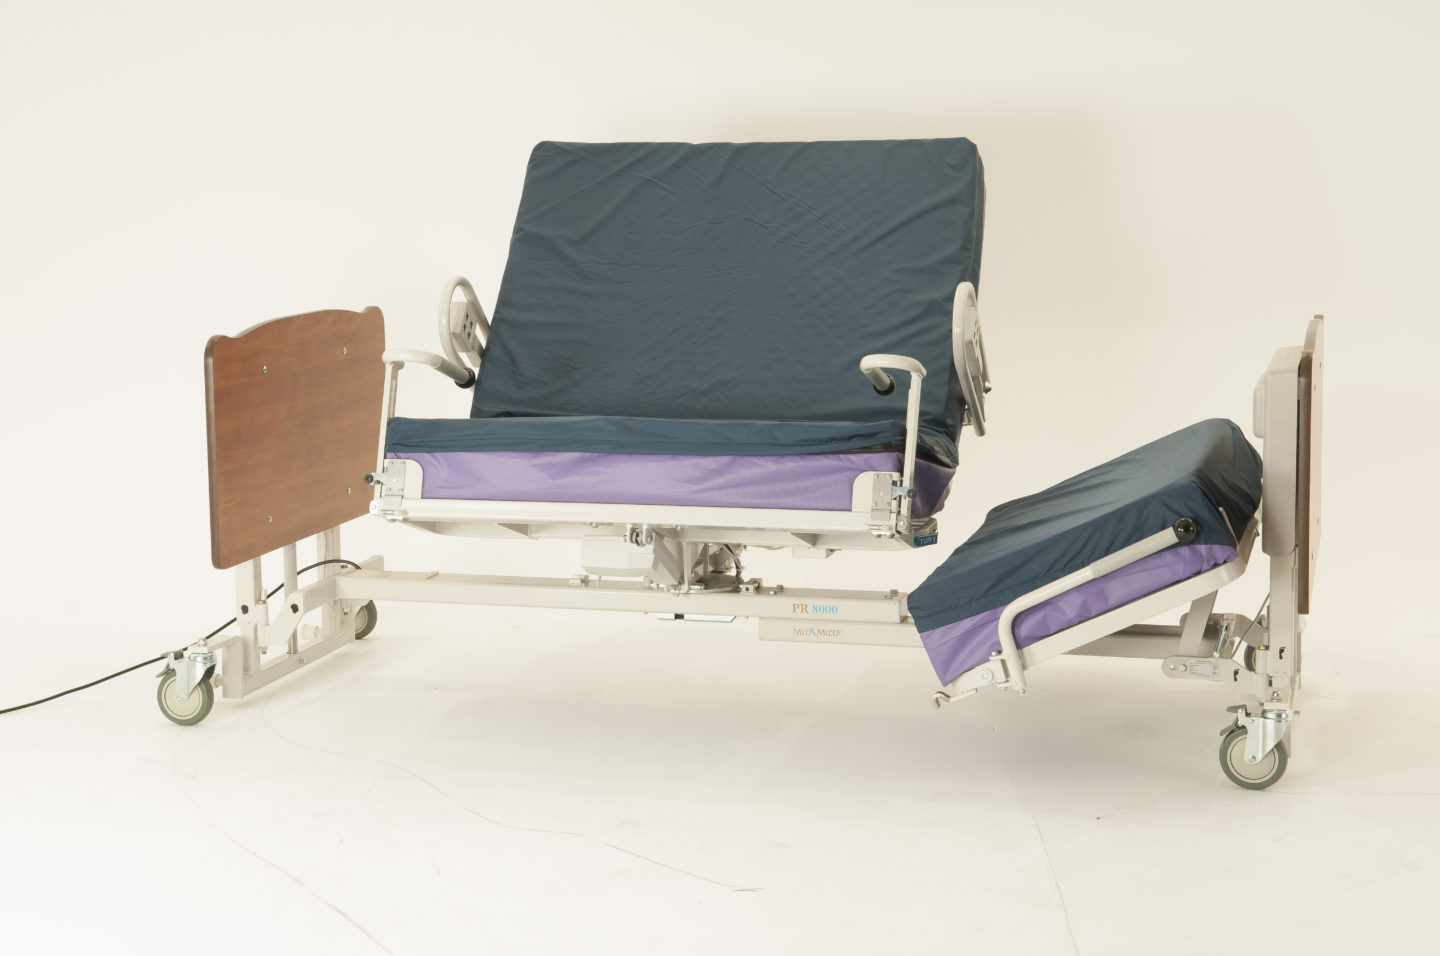 broda chair accessories indulgence fishing pr1000 rehab bed procare medical